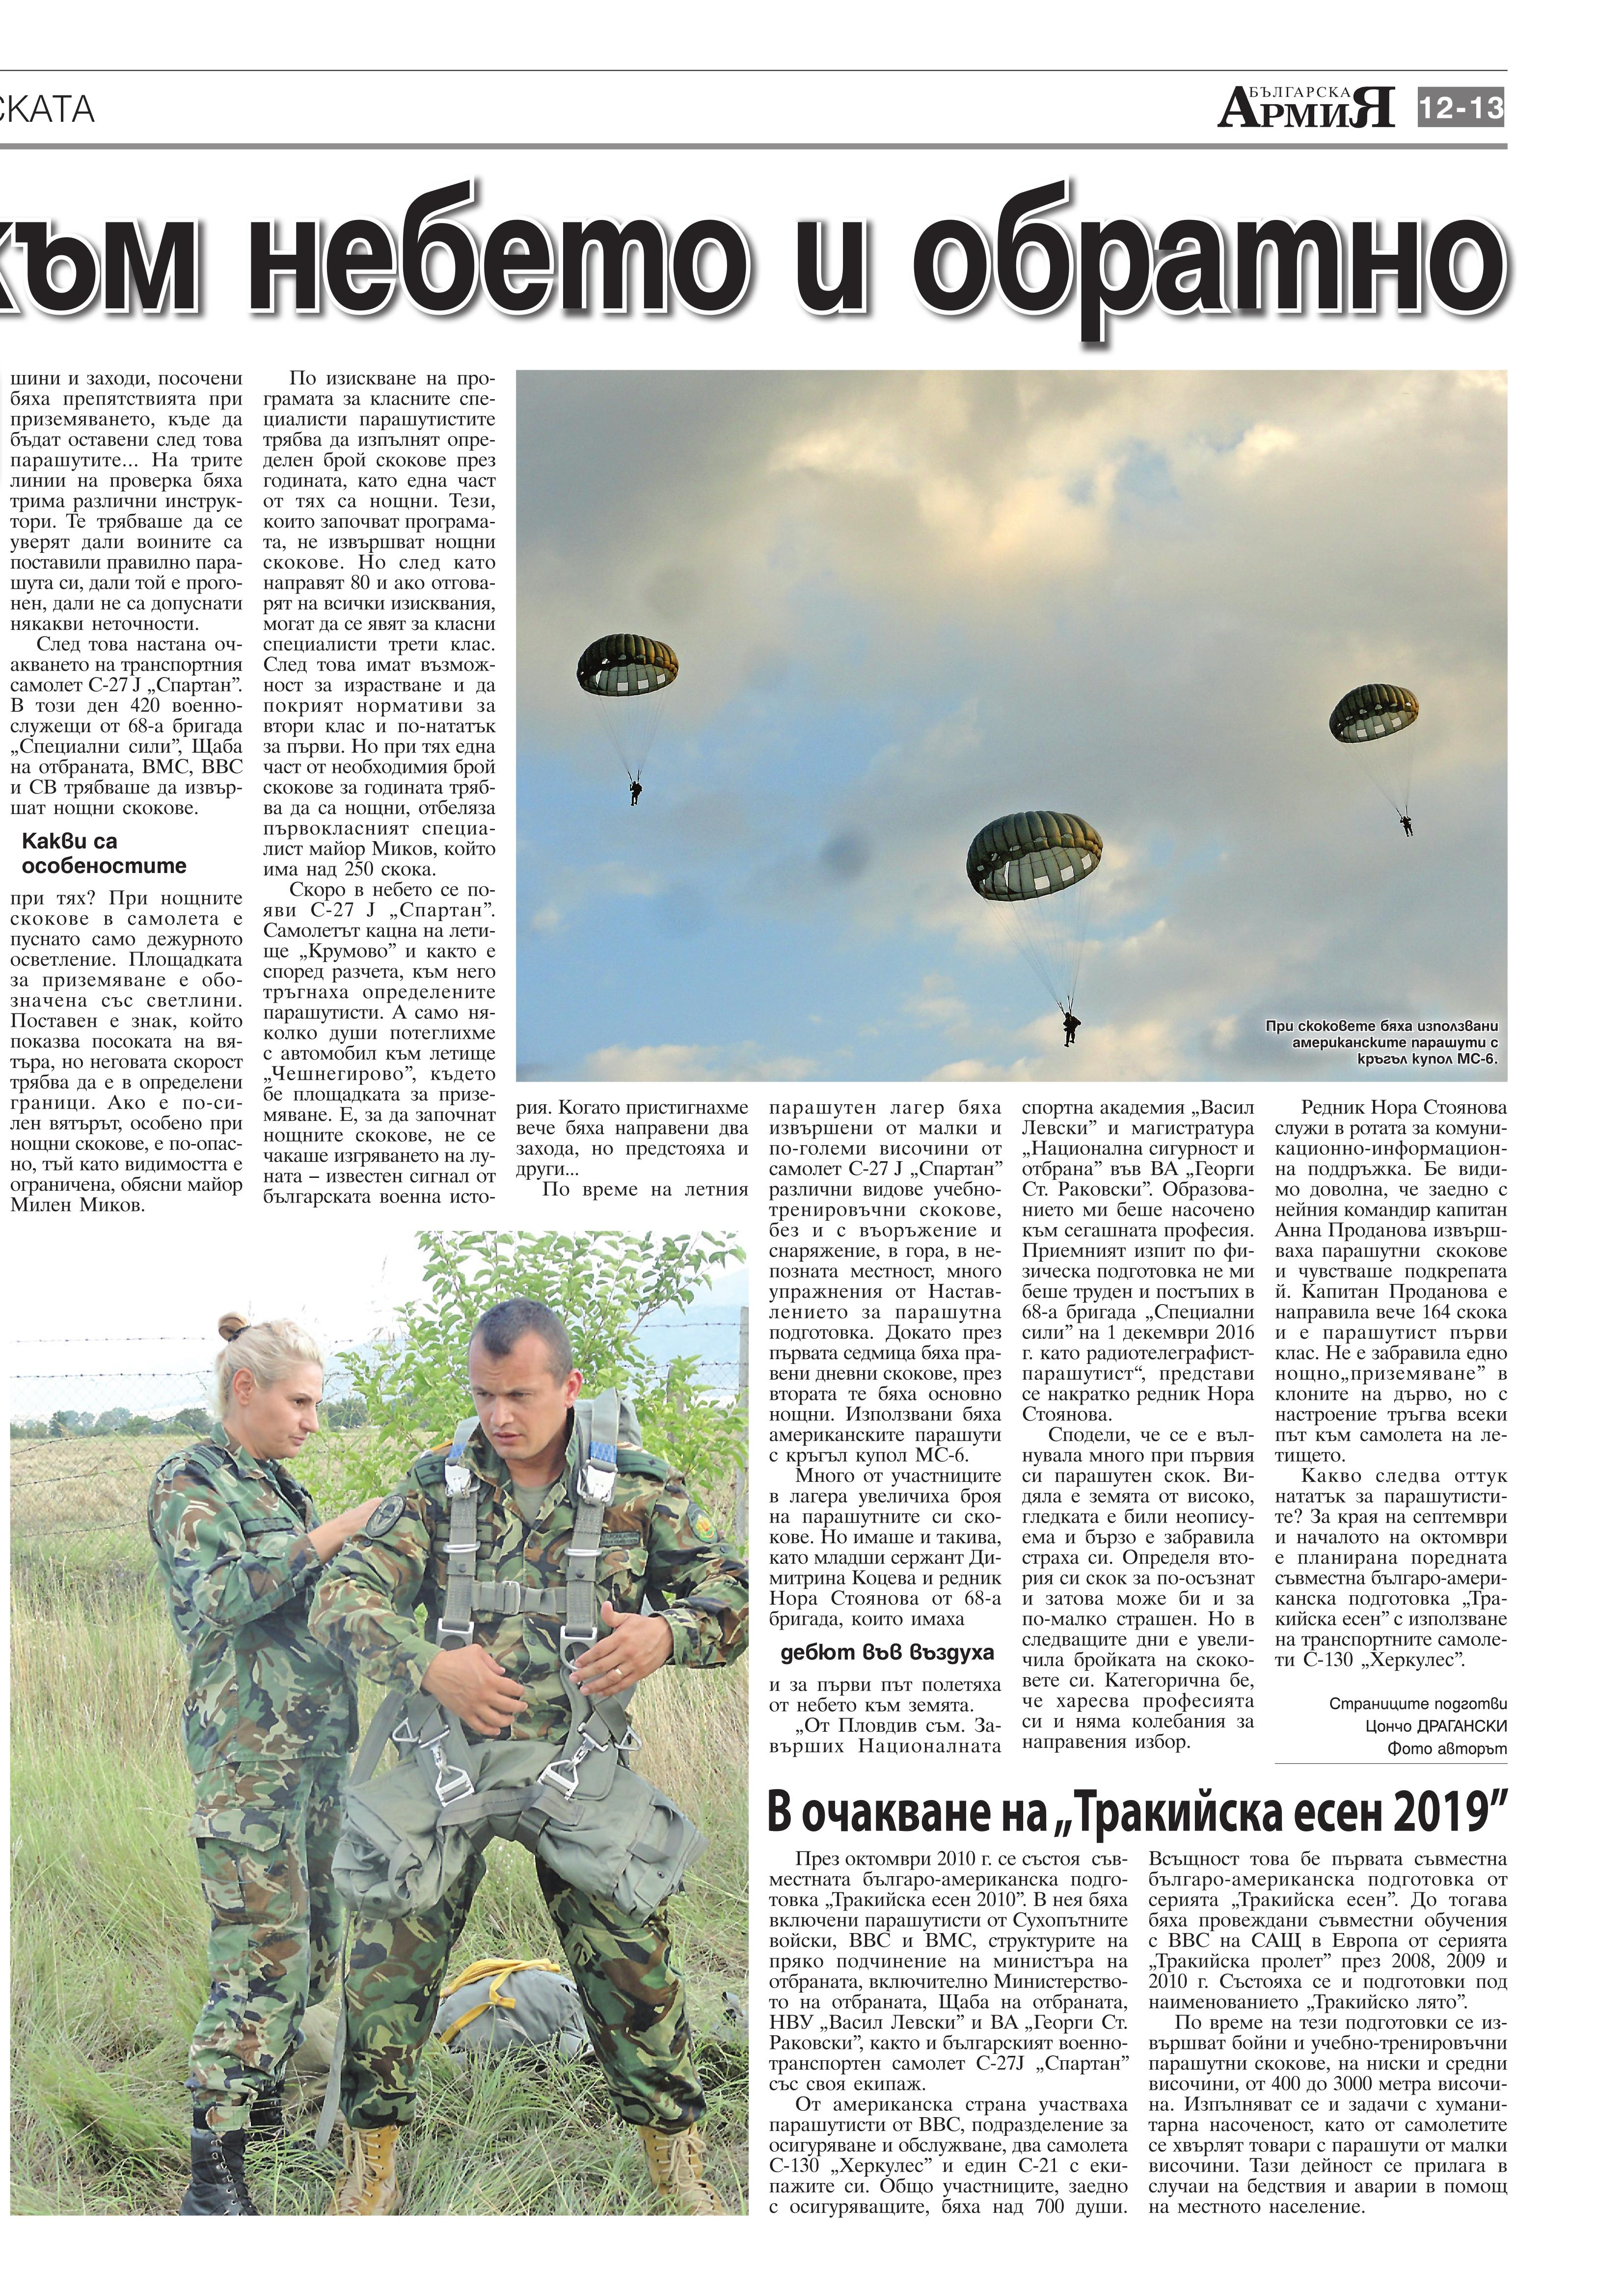 https://armymedia.bg/wp-content/uploads/2015/06/13.page1_-106.jpg